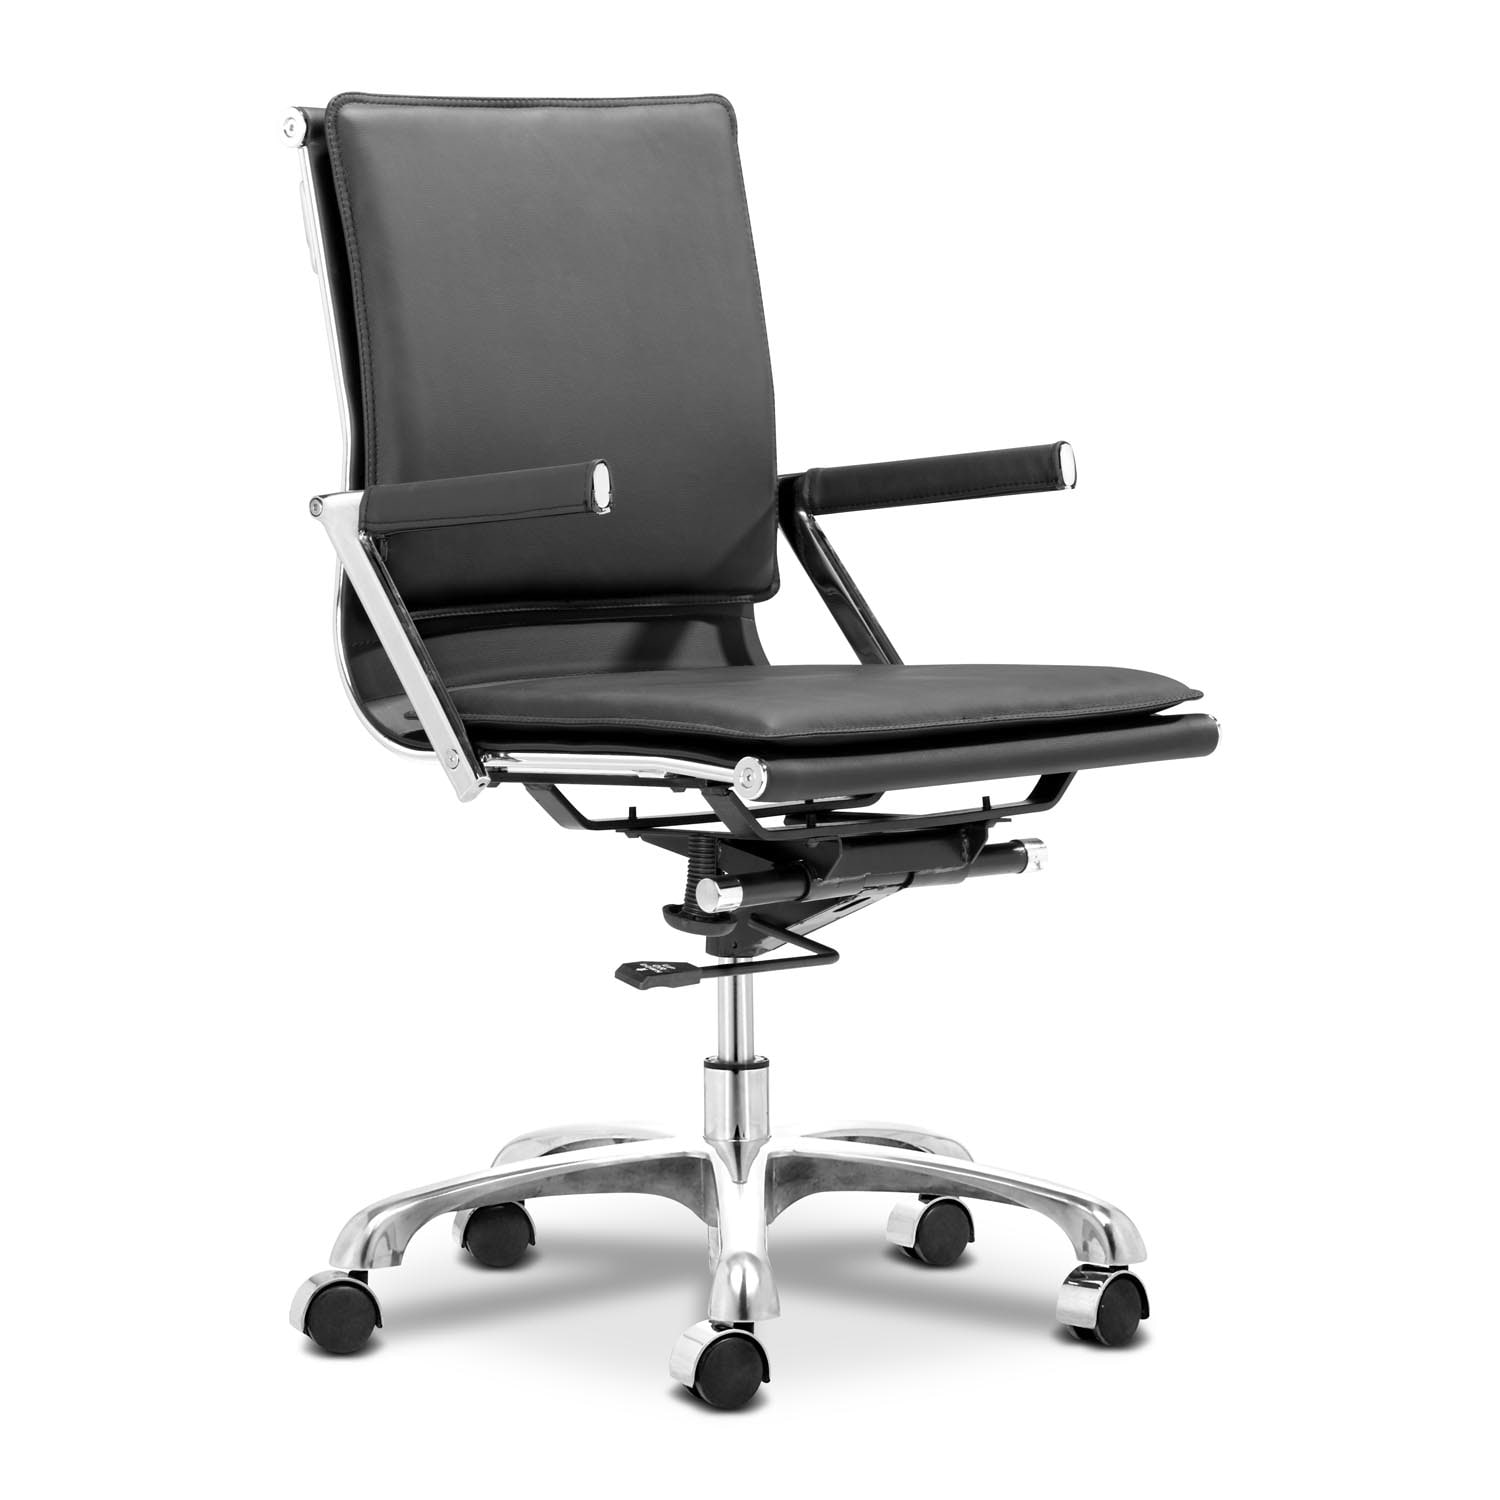 Home Office Furniture - Nelson Office Arm Chair